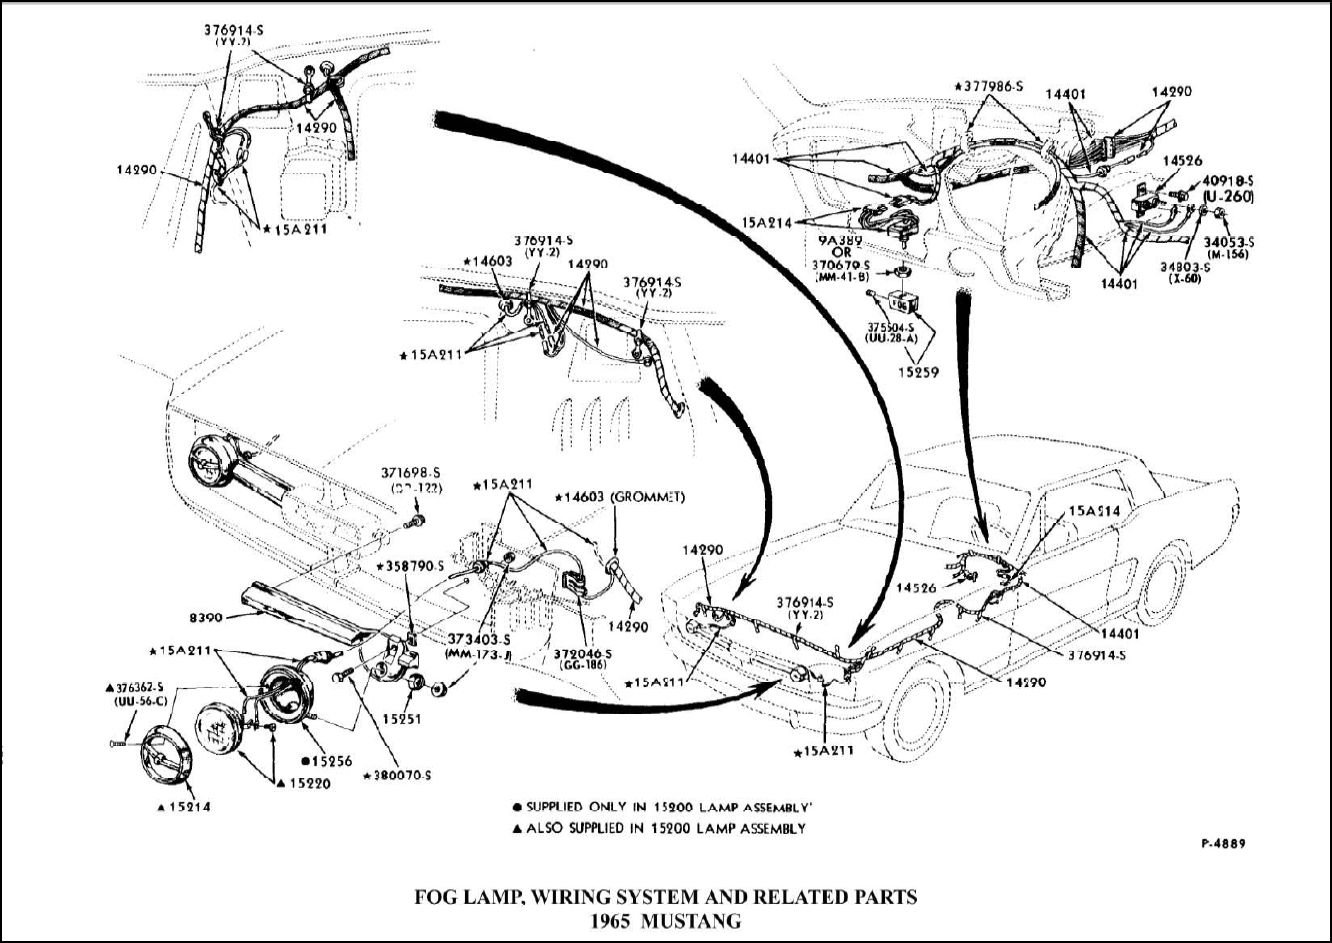 Subaru Impreza Fog Light 2004 Wiring Diagrams Library A 500 Diagram 1965 Mustang Gt Ford Forum 118198d1293507181